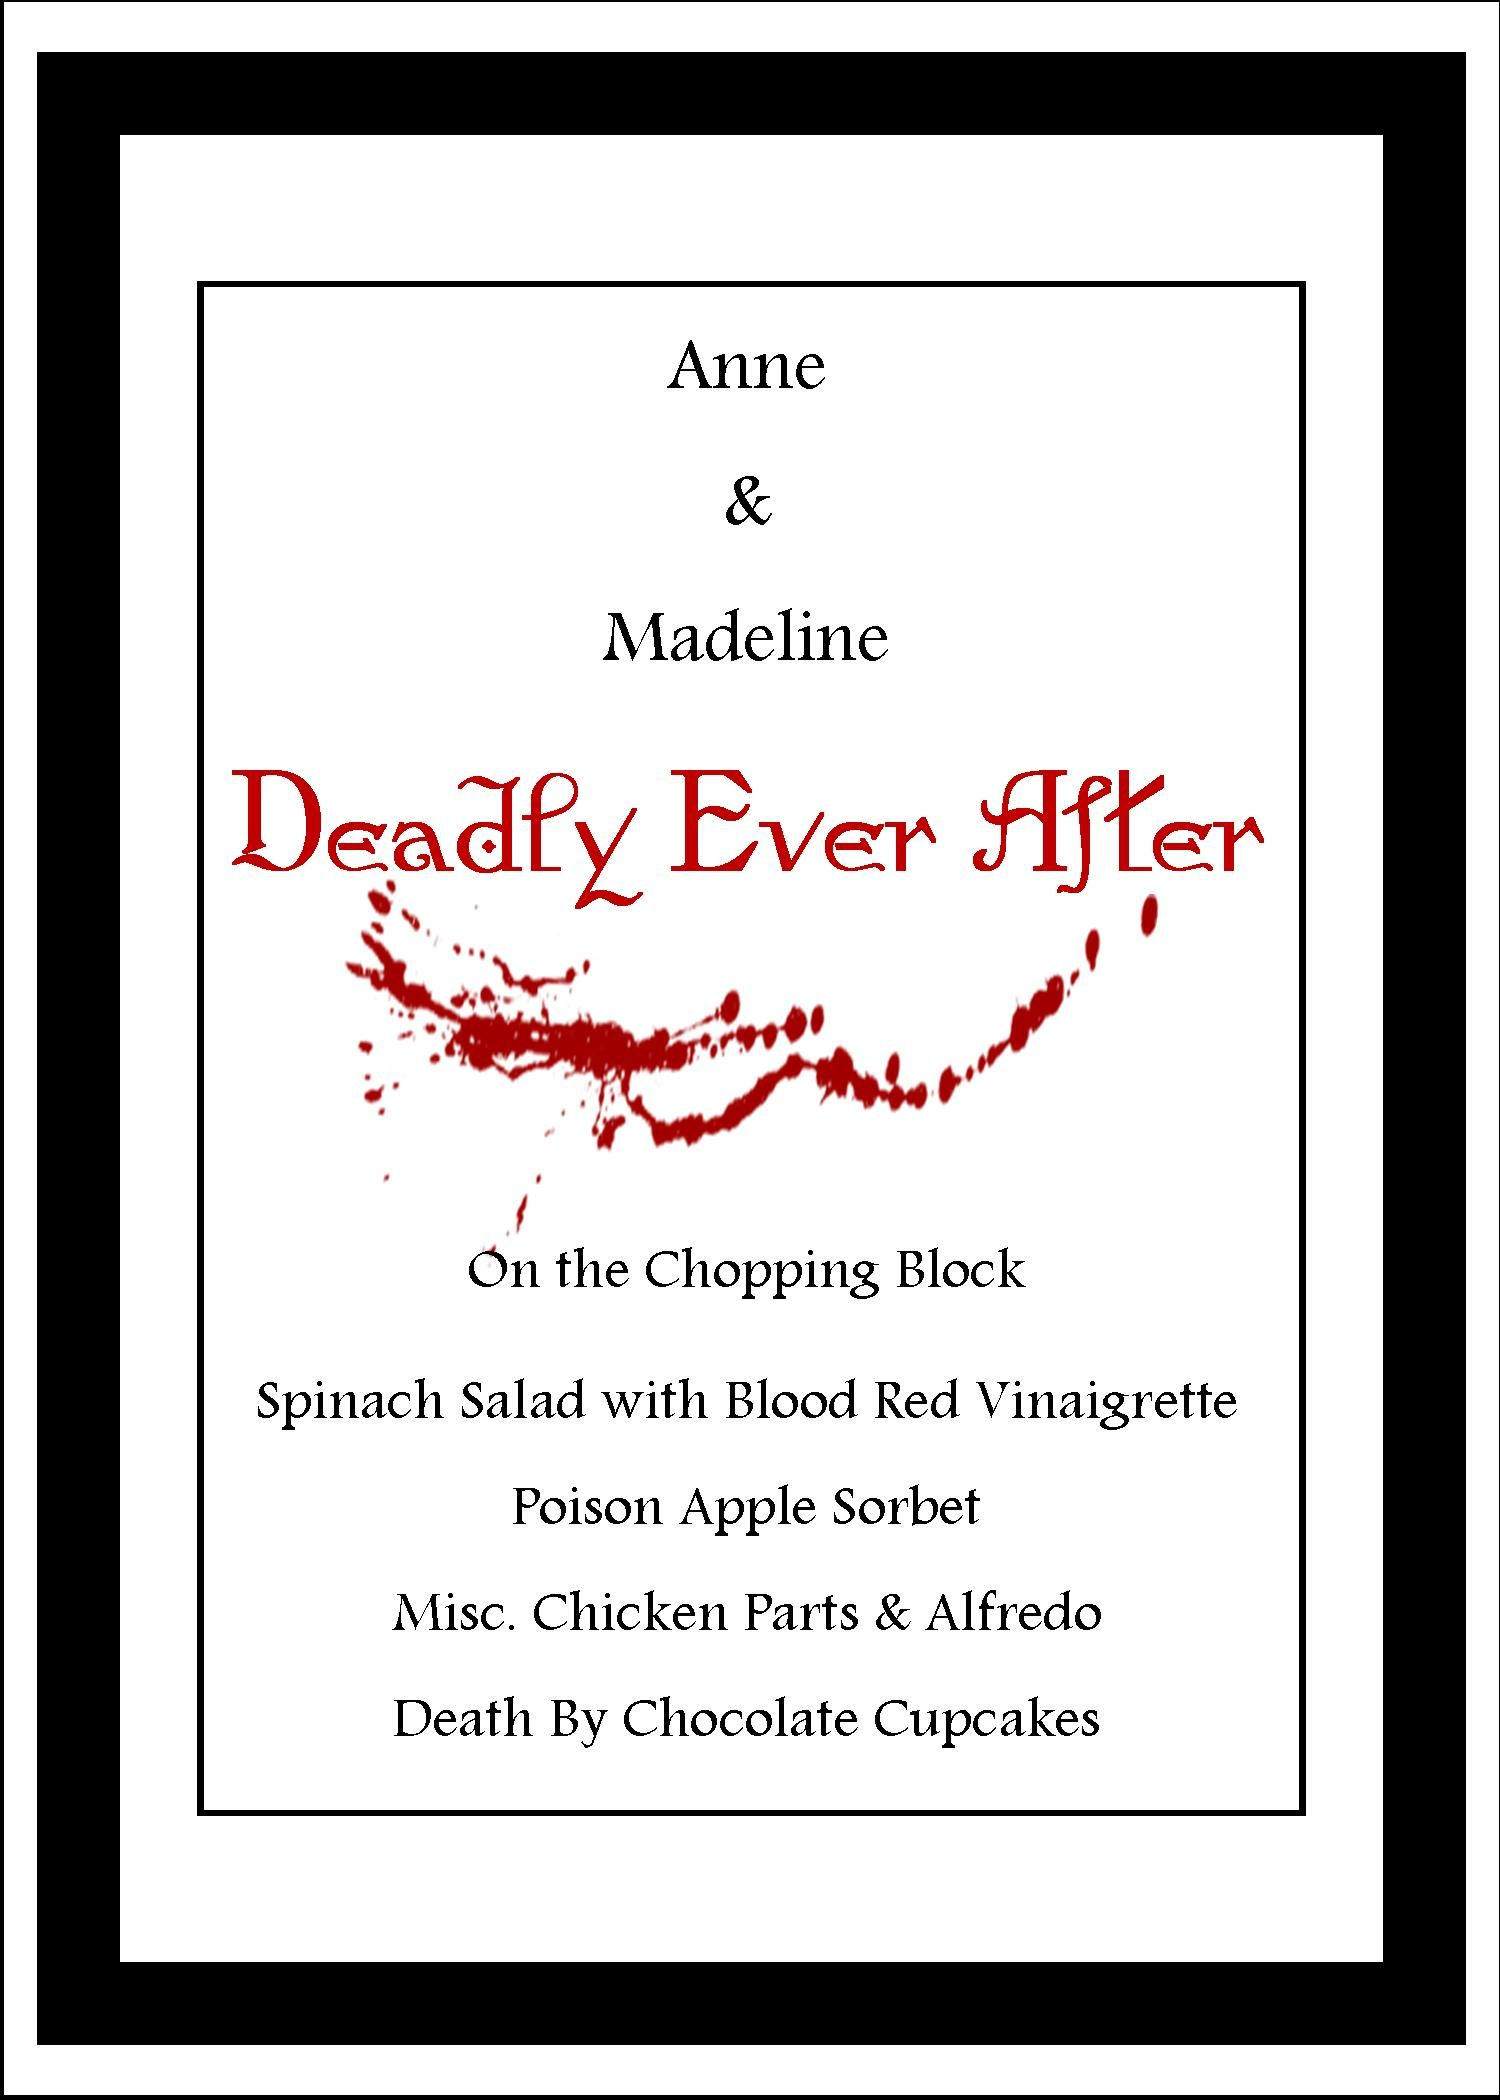 Charming Mystery Dinner Party Menu Ideas Part - 7: Murder Mystery Menu For Two Young Ladies 16th Birthday Dinner At The Inn.  Themed U0027